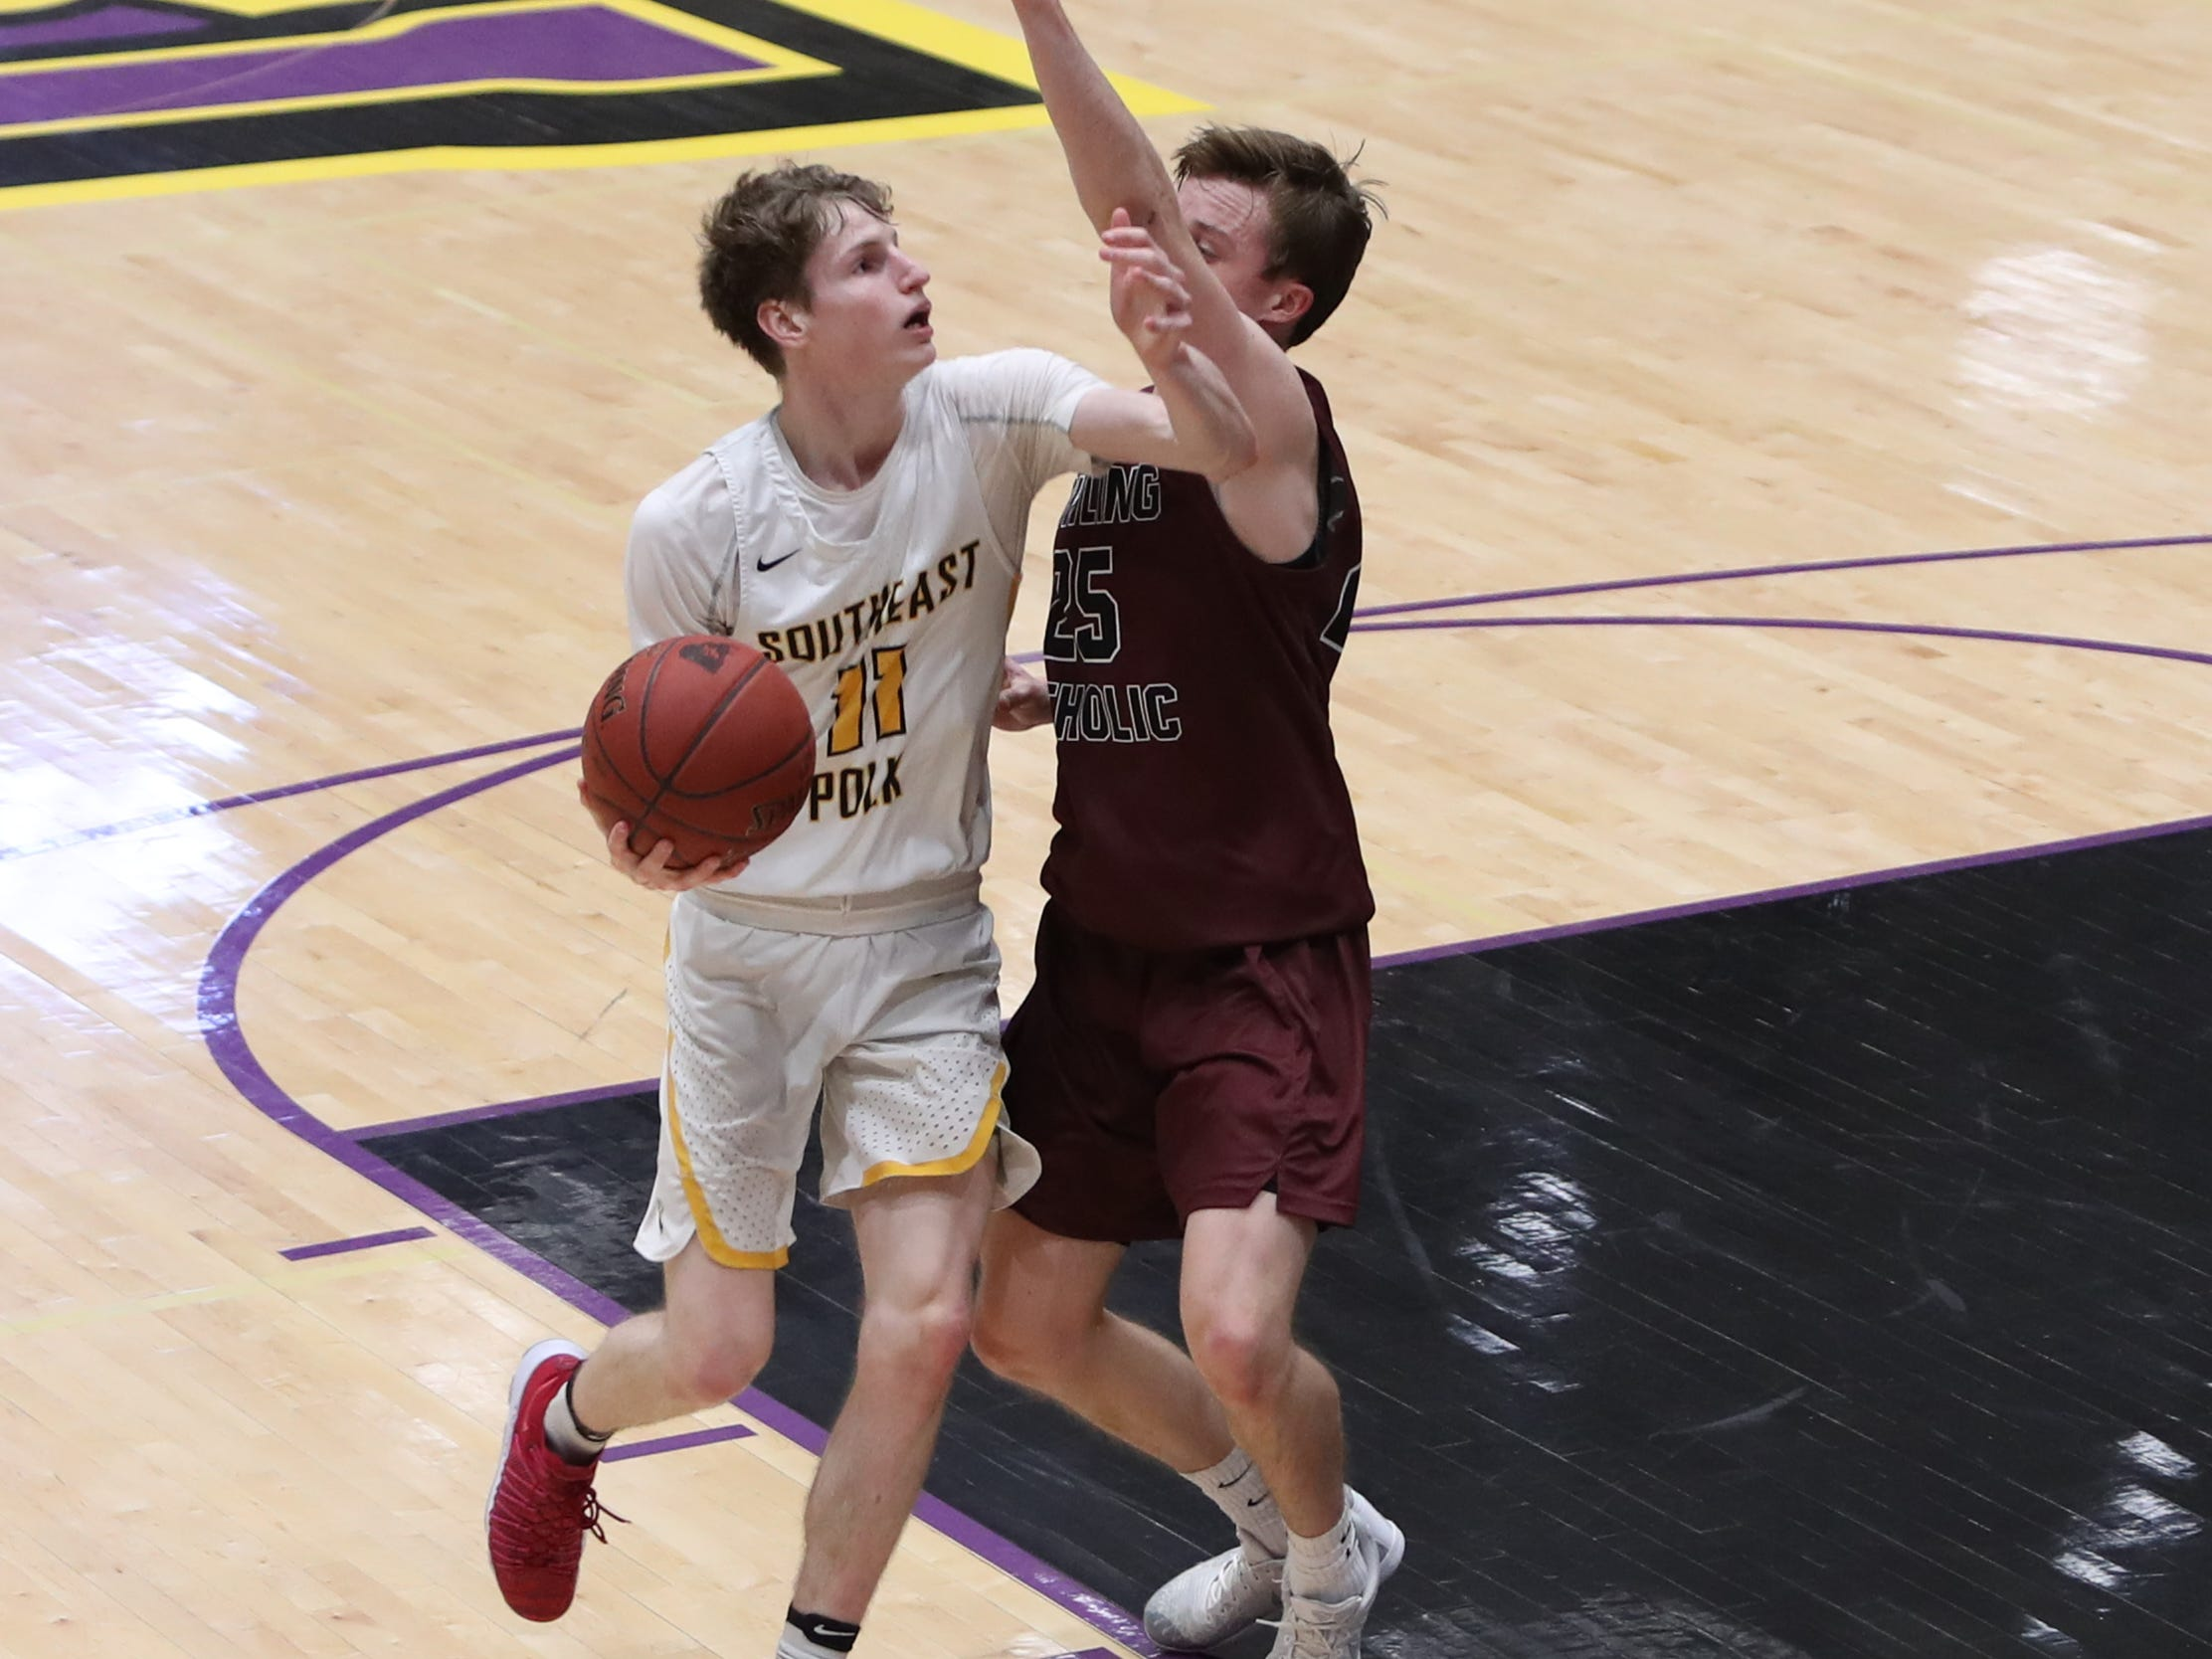 Dowling Catholic's Matt Stilwill (25) defends Southeast Polk's Sam Glenn (11) during their game at Johnston High School in Johnston, Iowa, on Tuesday, Feb. 26, 2019. Dowling won the game 44-40 to advance to state.